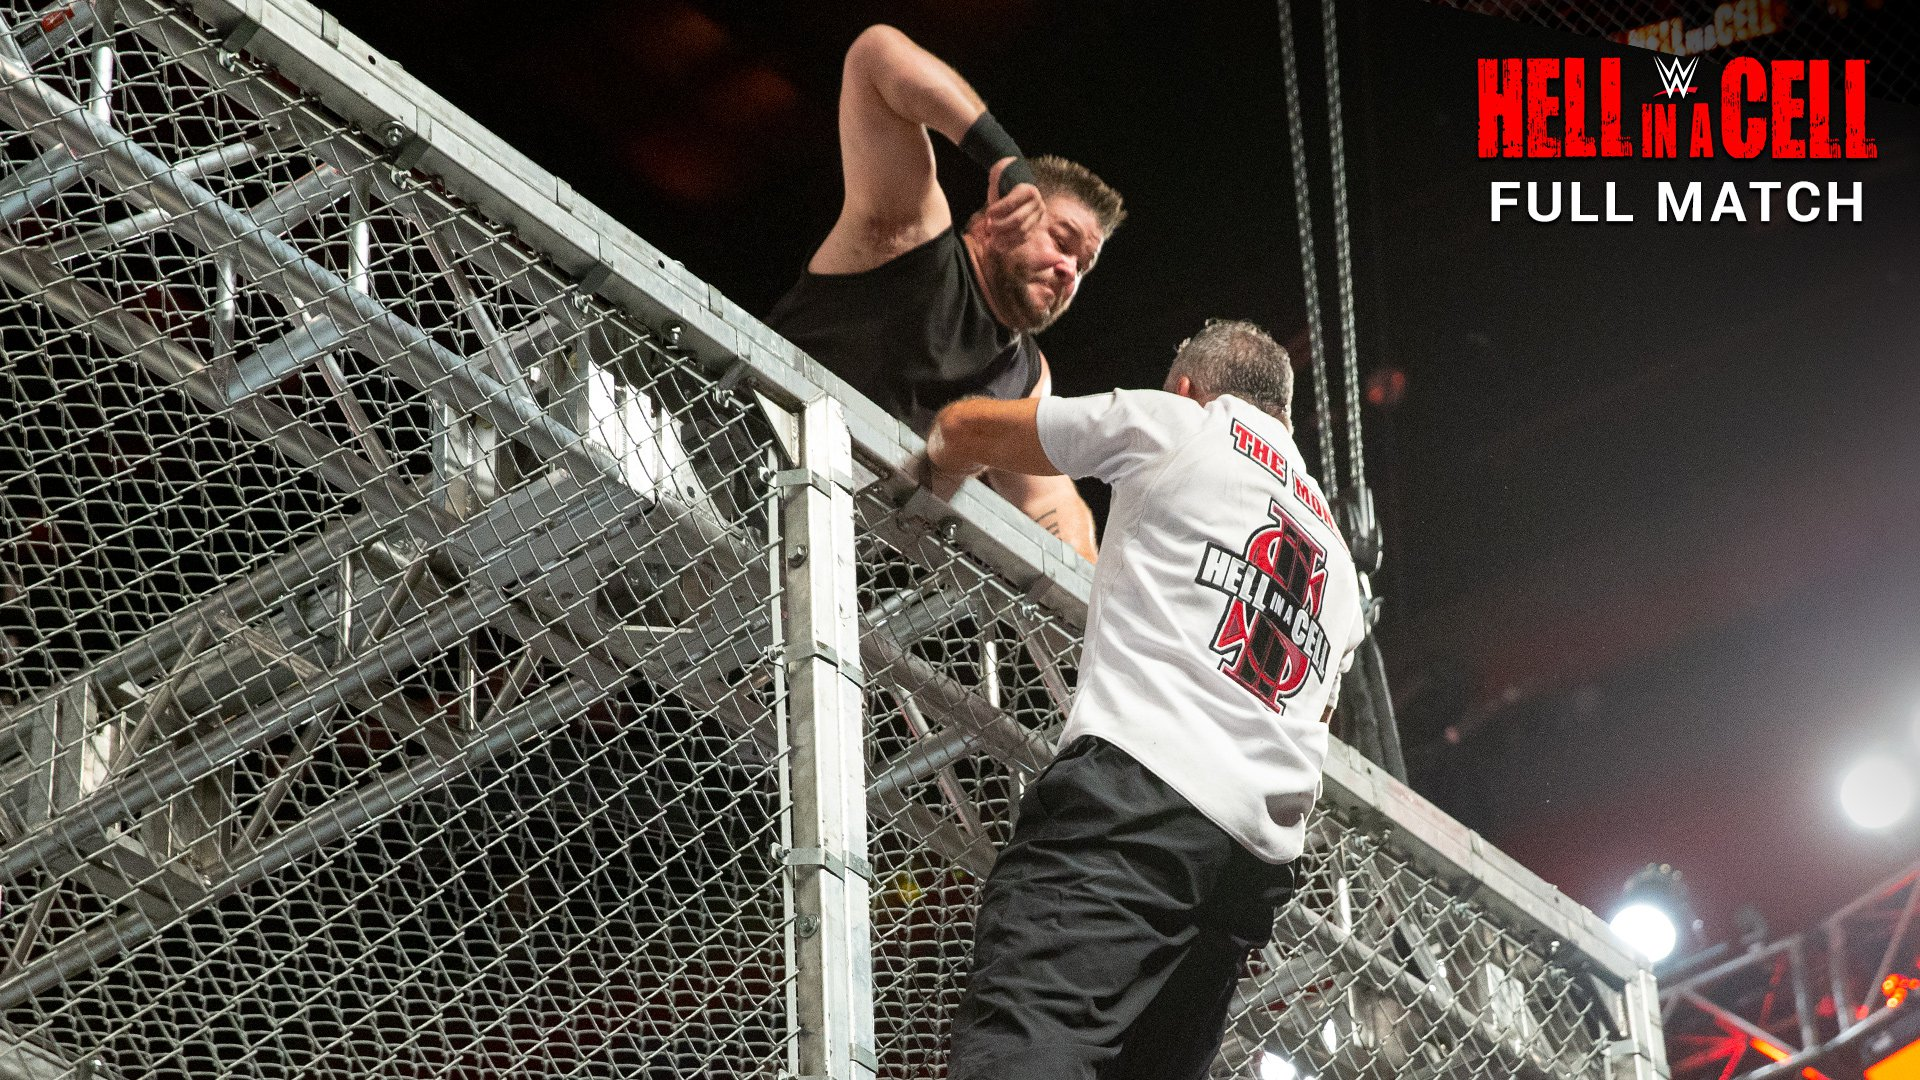 Shane McMahon vs. Kevin Owens - Falls Count Anywhere Hell in a Cell Match: WWE Hell in a Cell 2017 (Match Intégral - Exclusivité WWE Network)